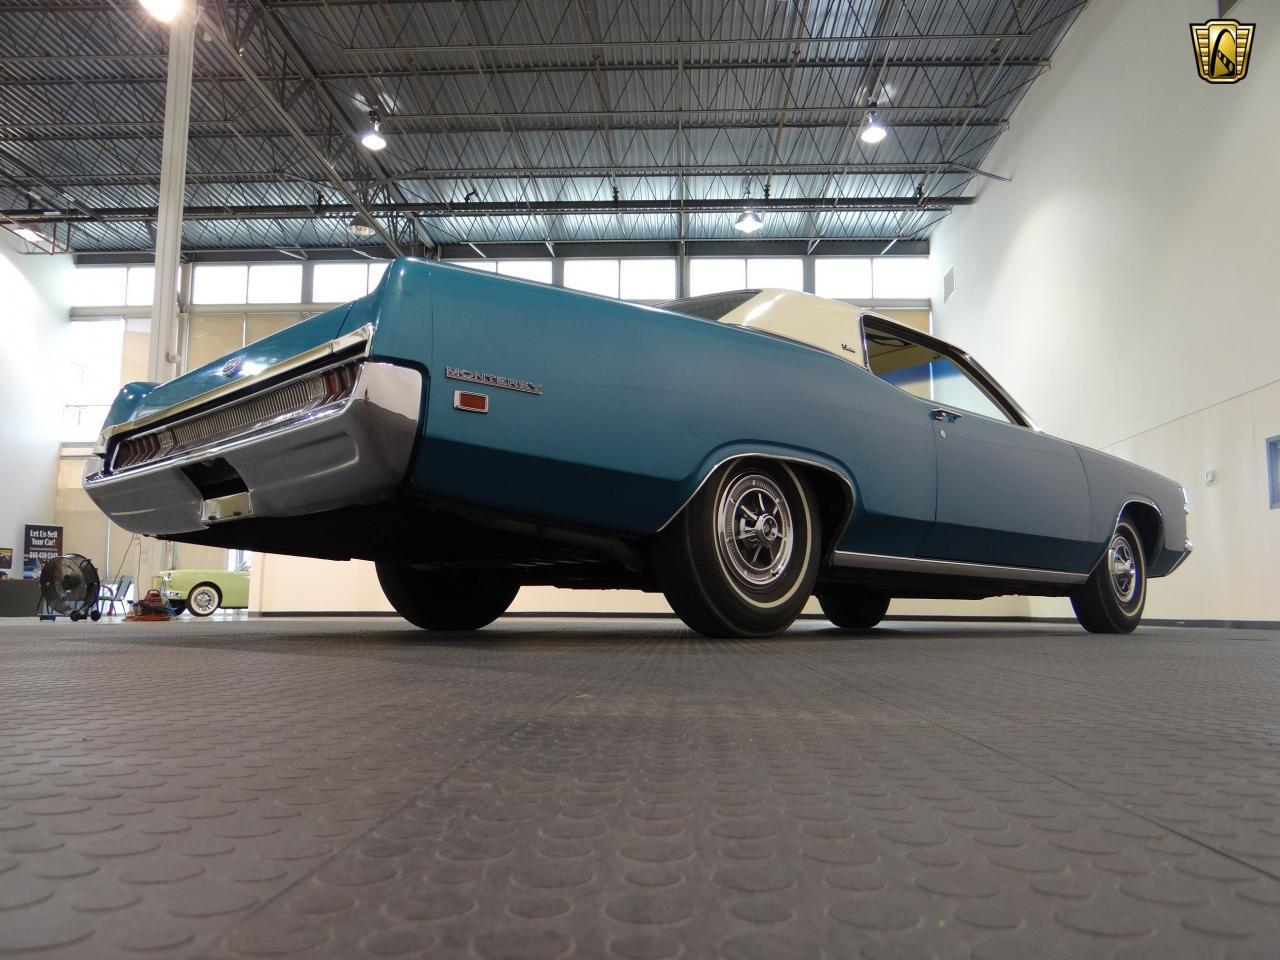 Large Picture of Classic 1969 Mercury Monterey located in Indiana - $17,995.00 Offered by Gateway Classic Cars - Indianapolis - KECC